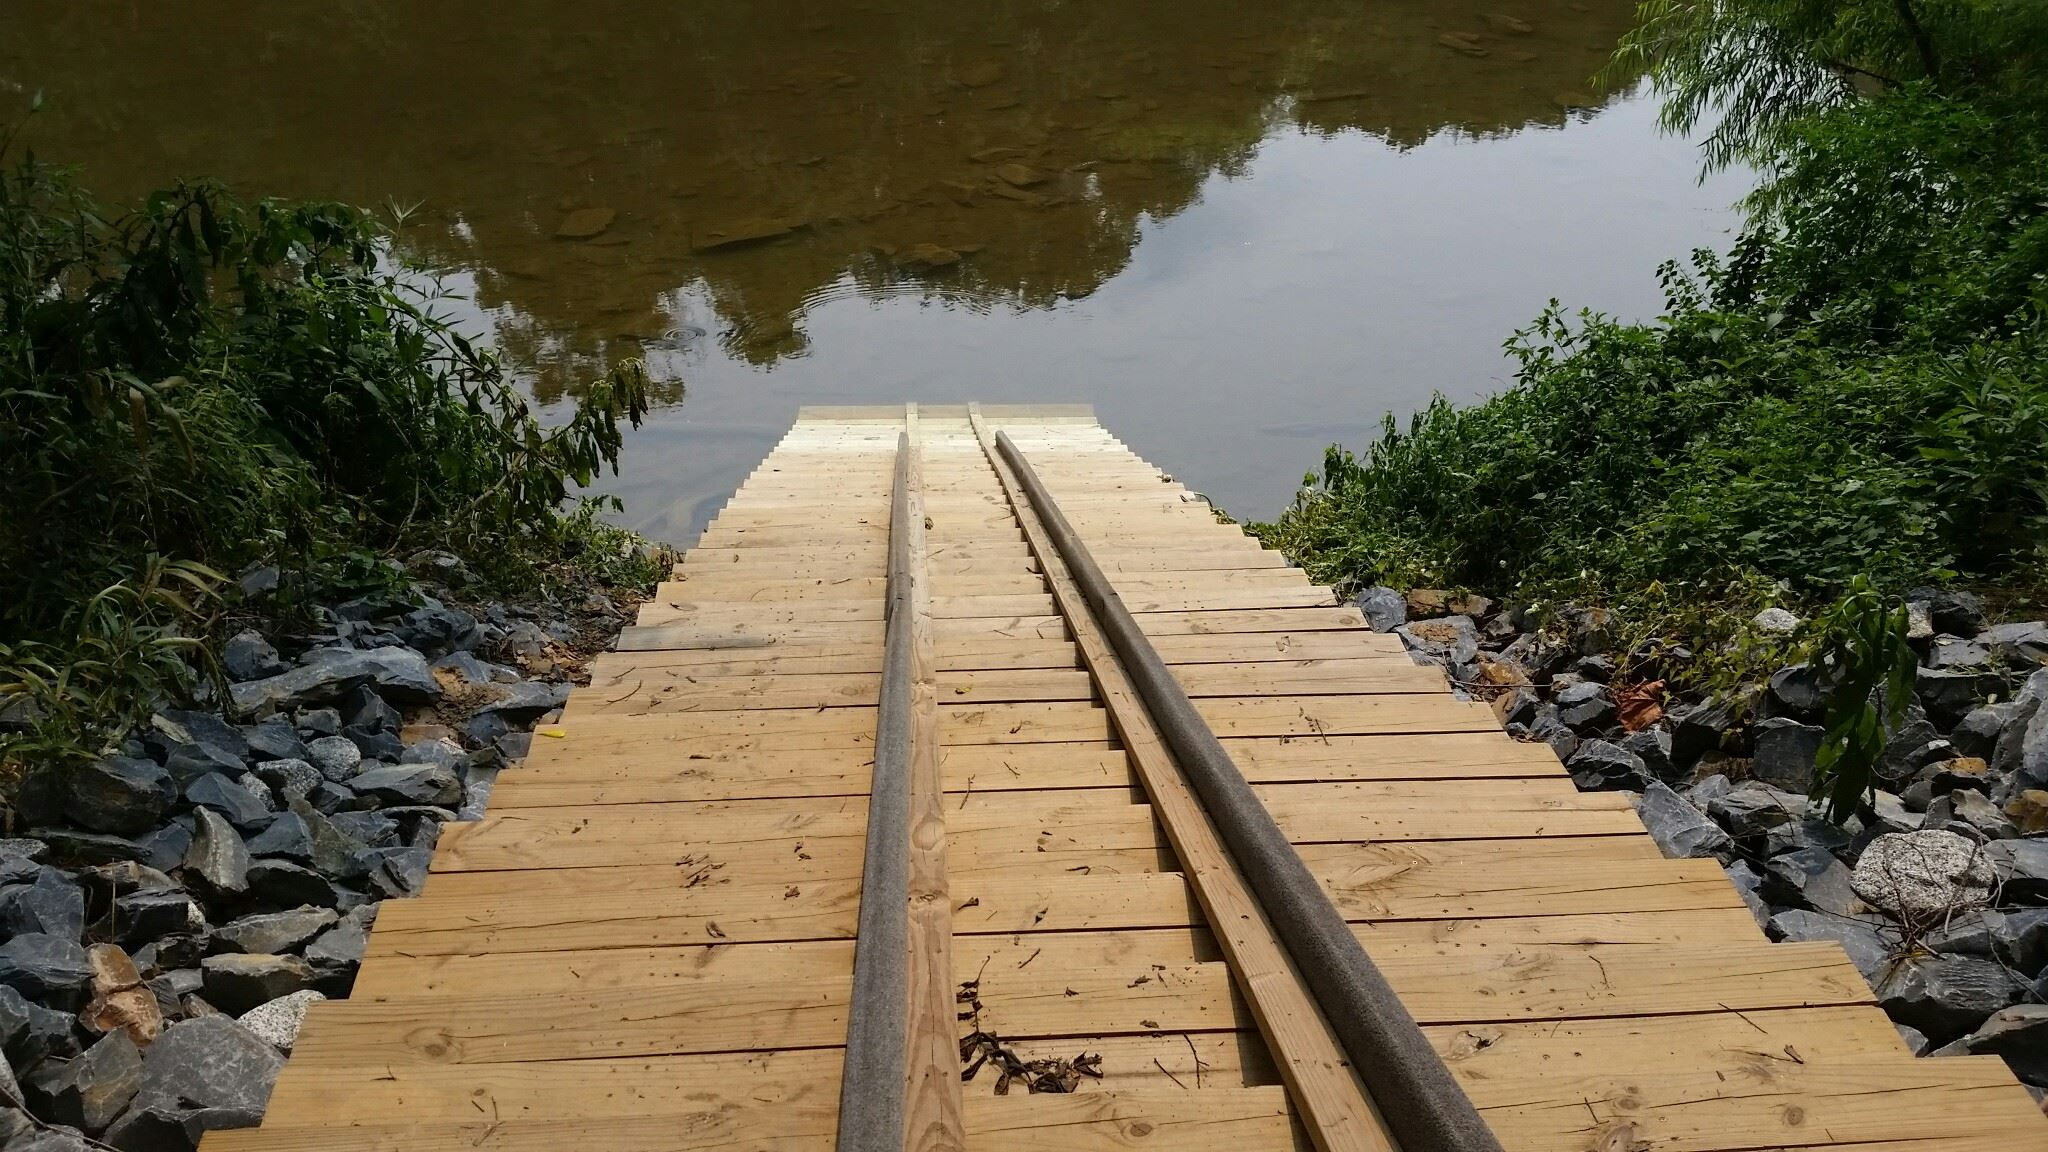 Ramp going into water at boat launch